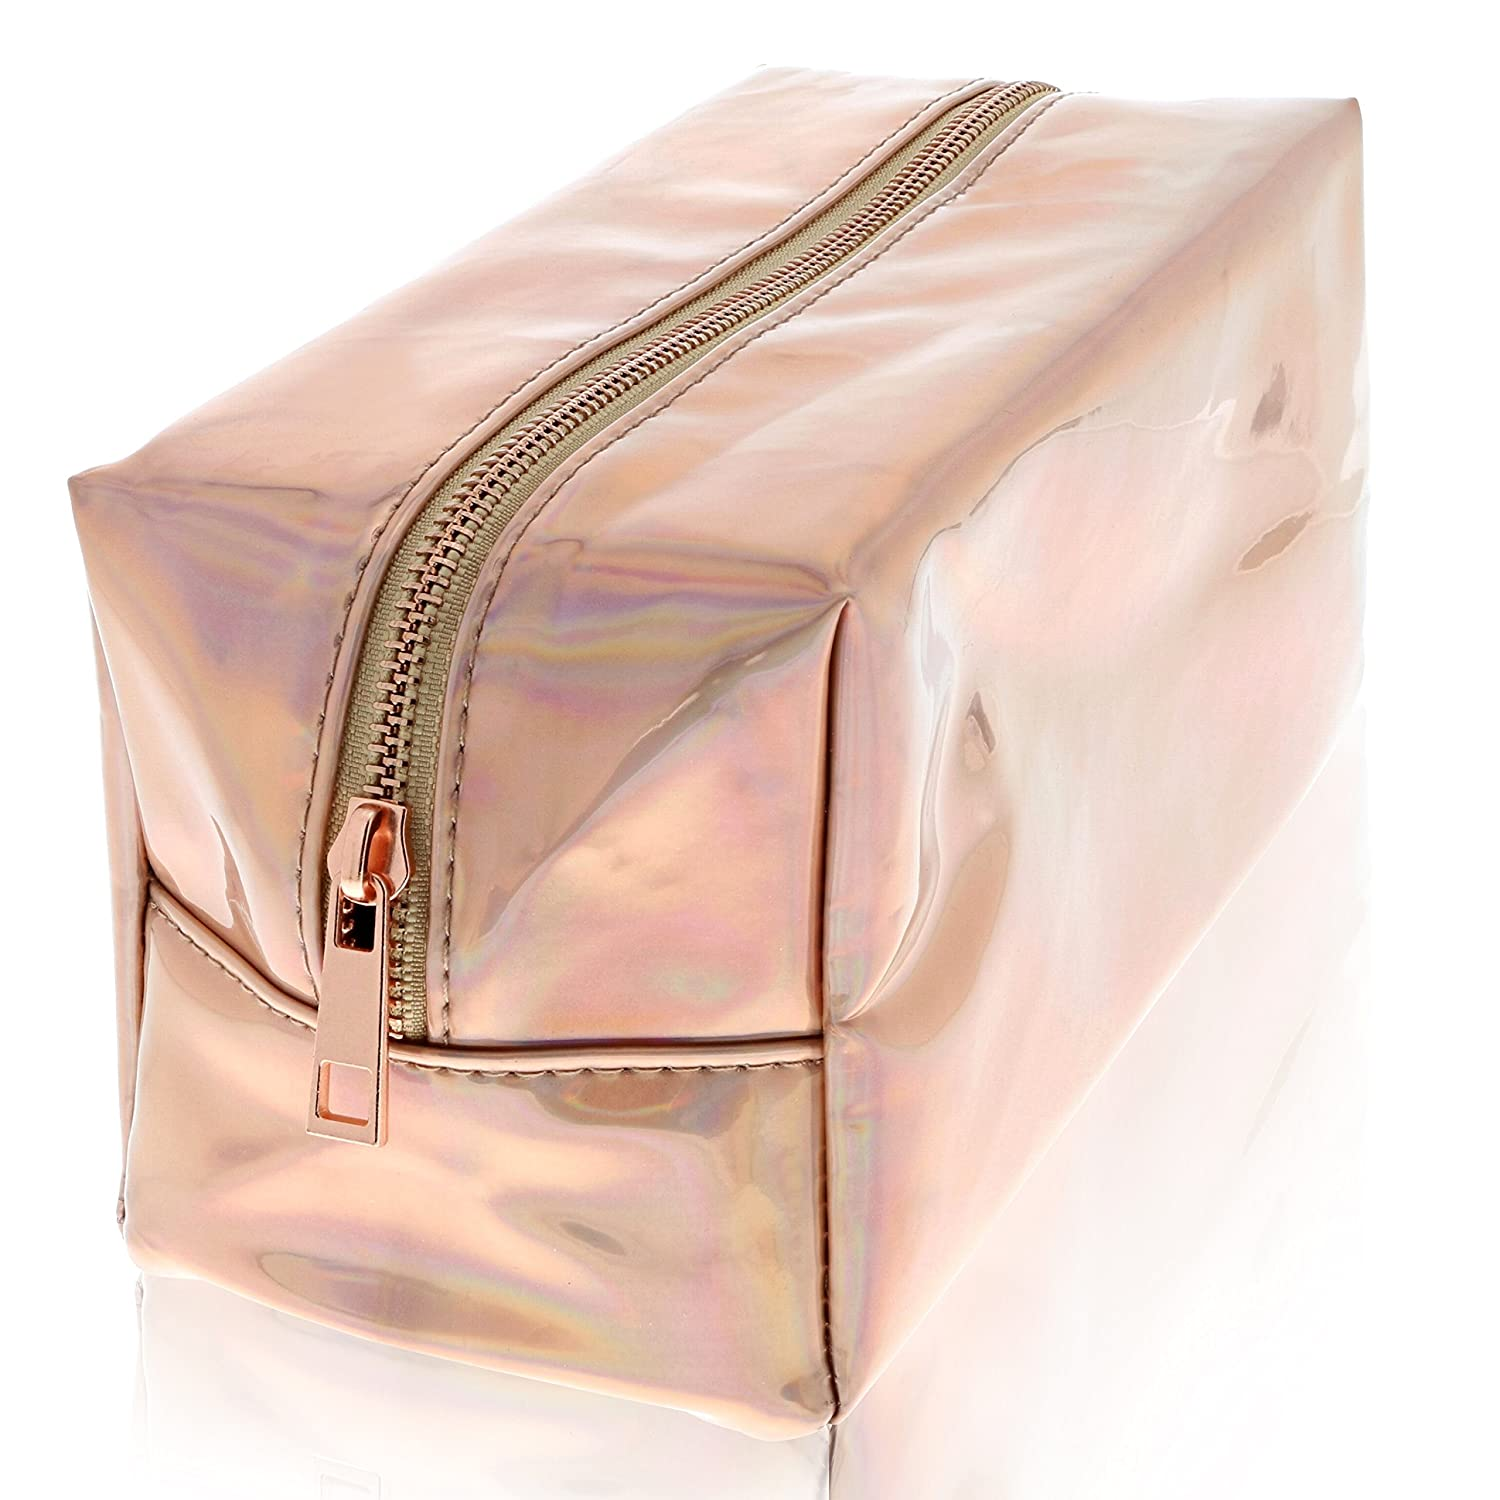 Rose Gold Holographic Makeup Bag – Metallic Cosmetic Make up Case – Cool Travel Bags